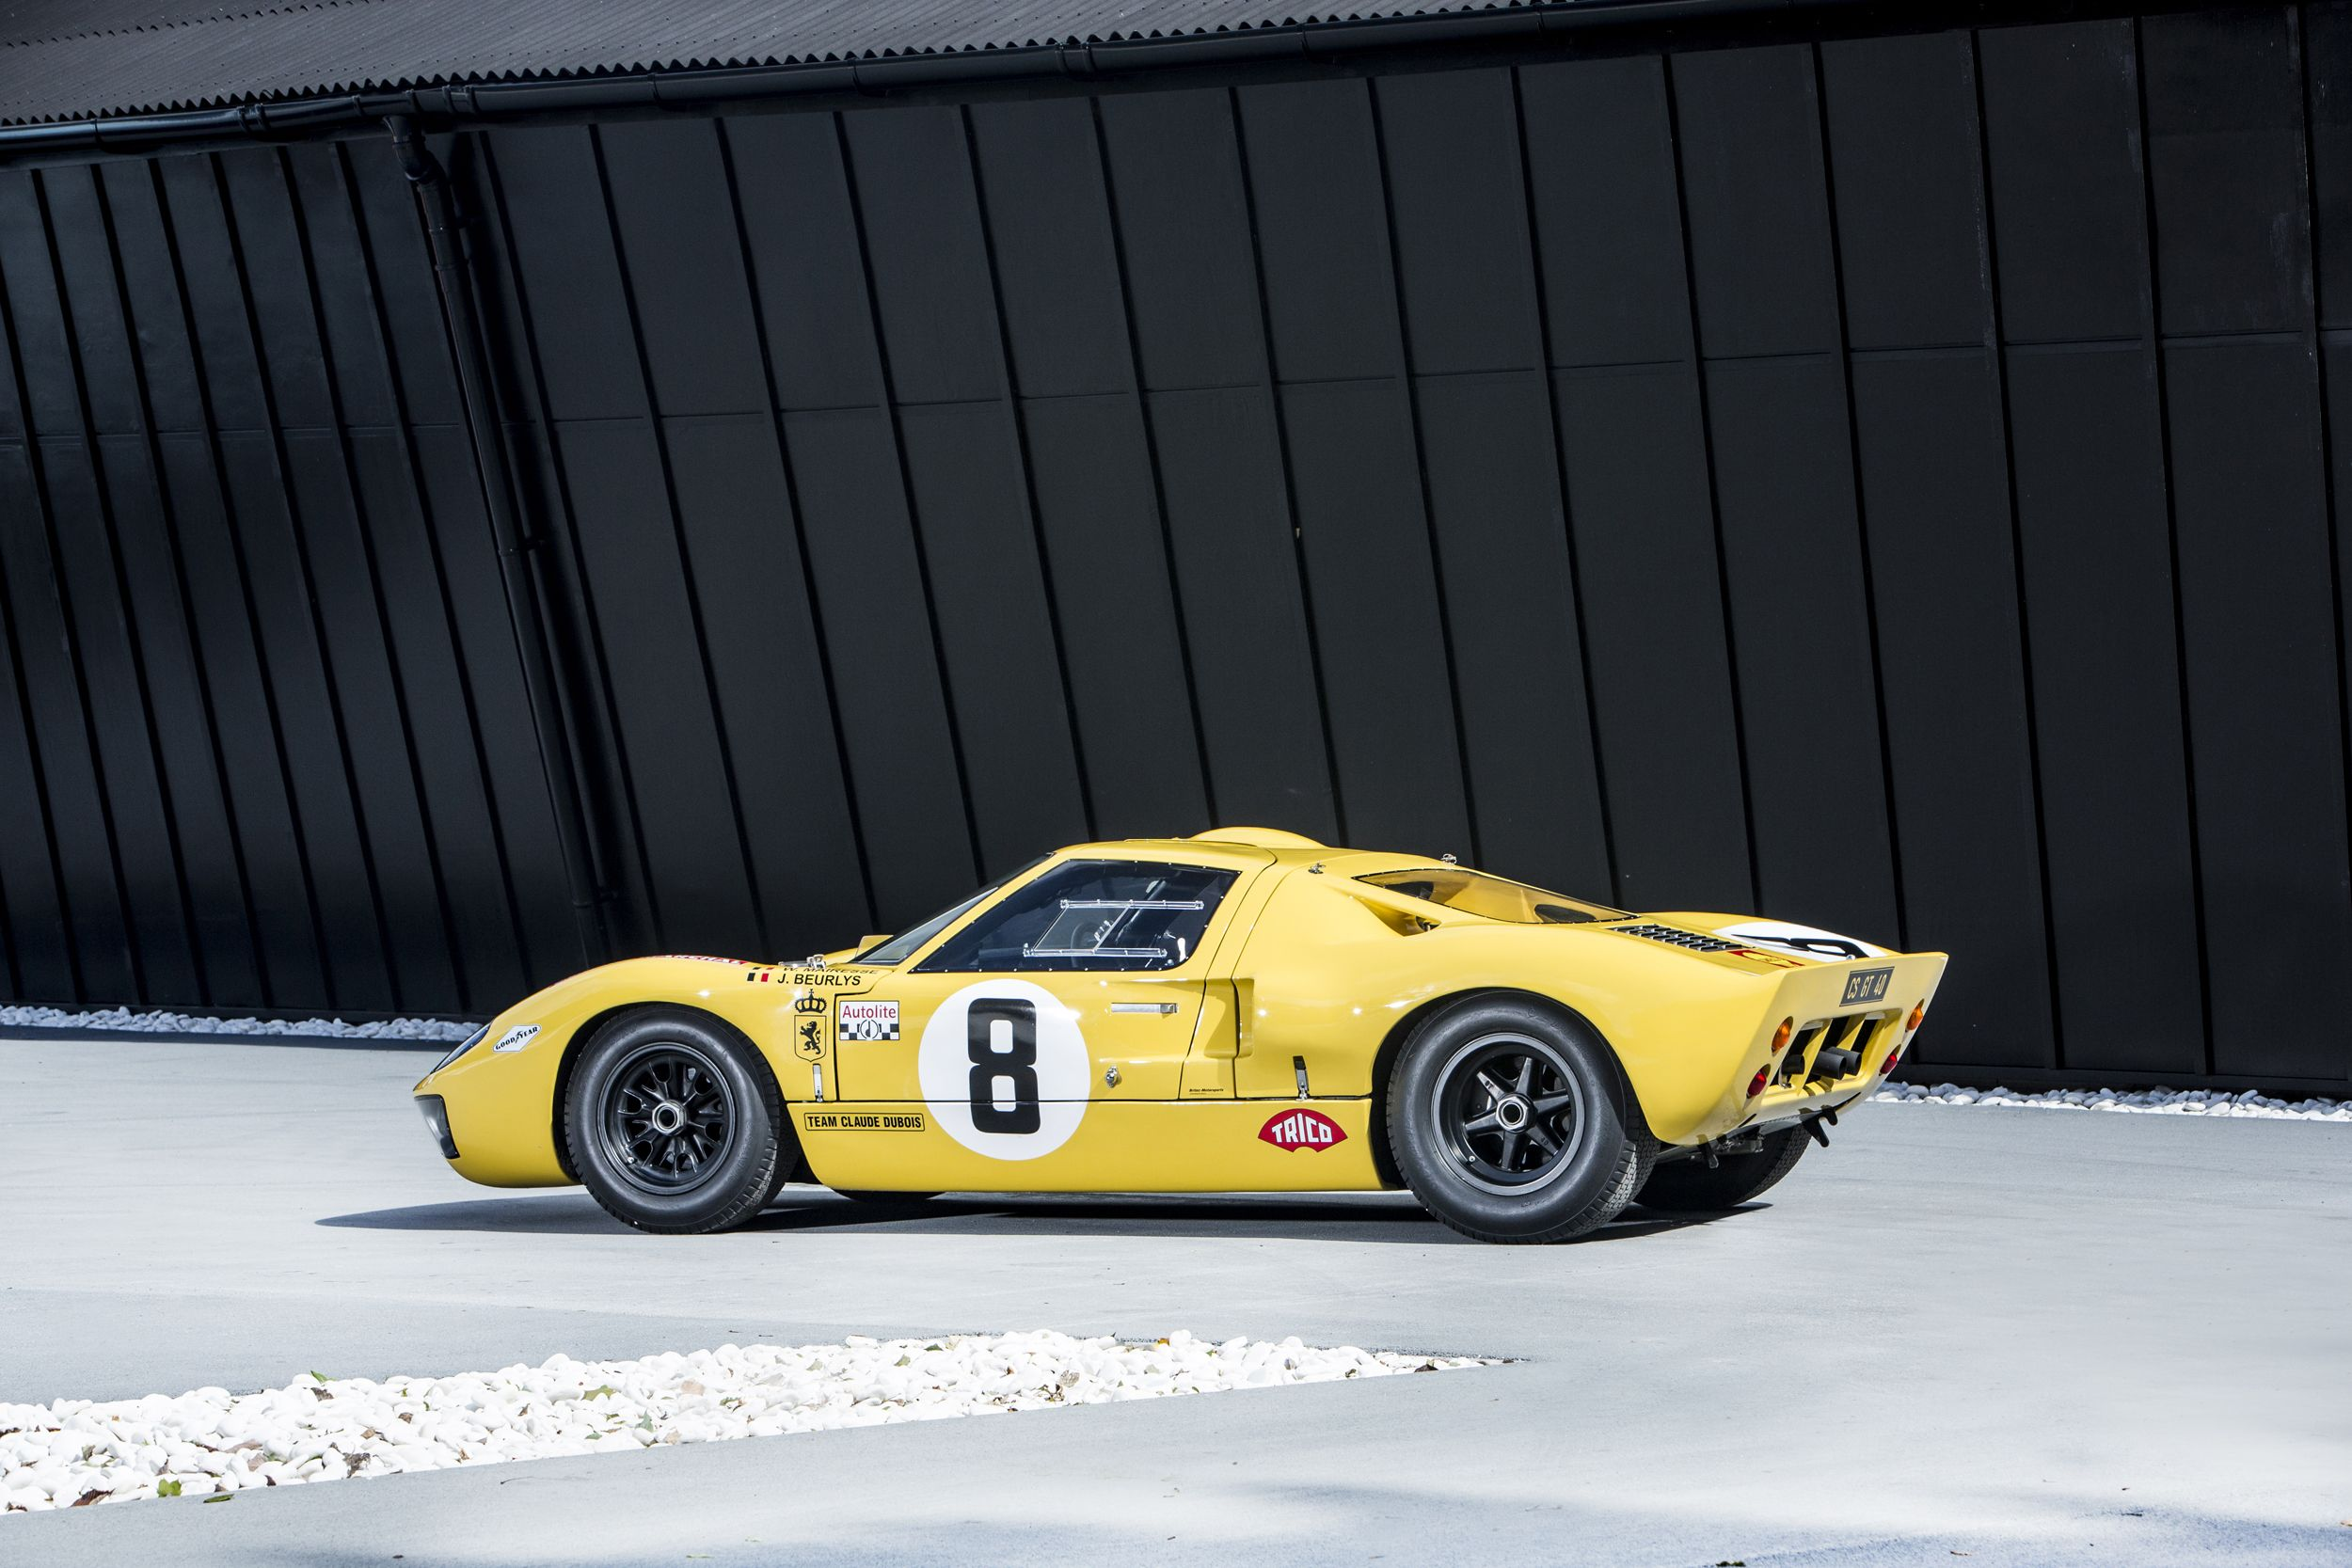 Pin By Doug Marinclin On Gt40 In 2020 With Images Ford Gt40